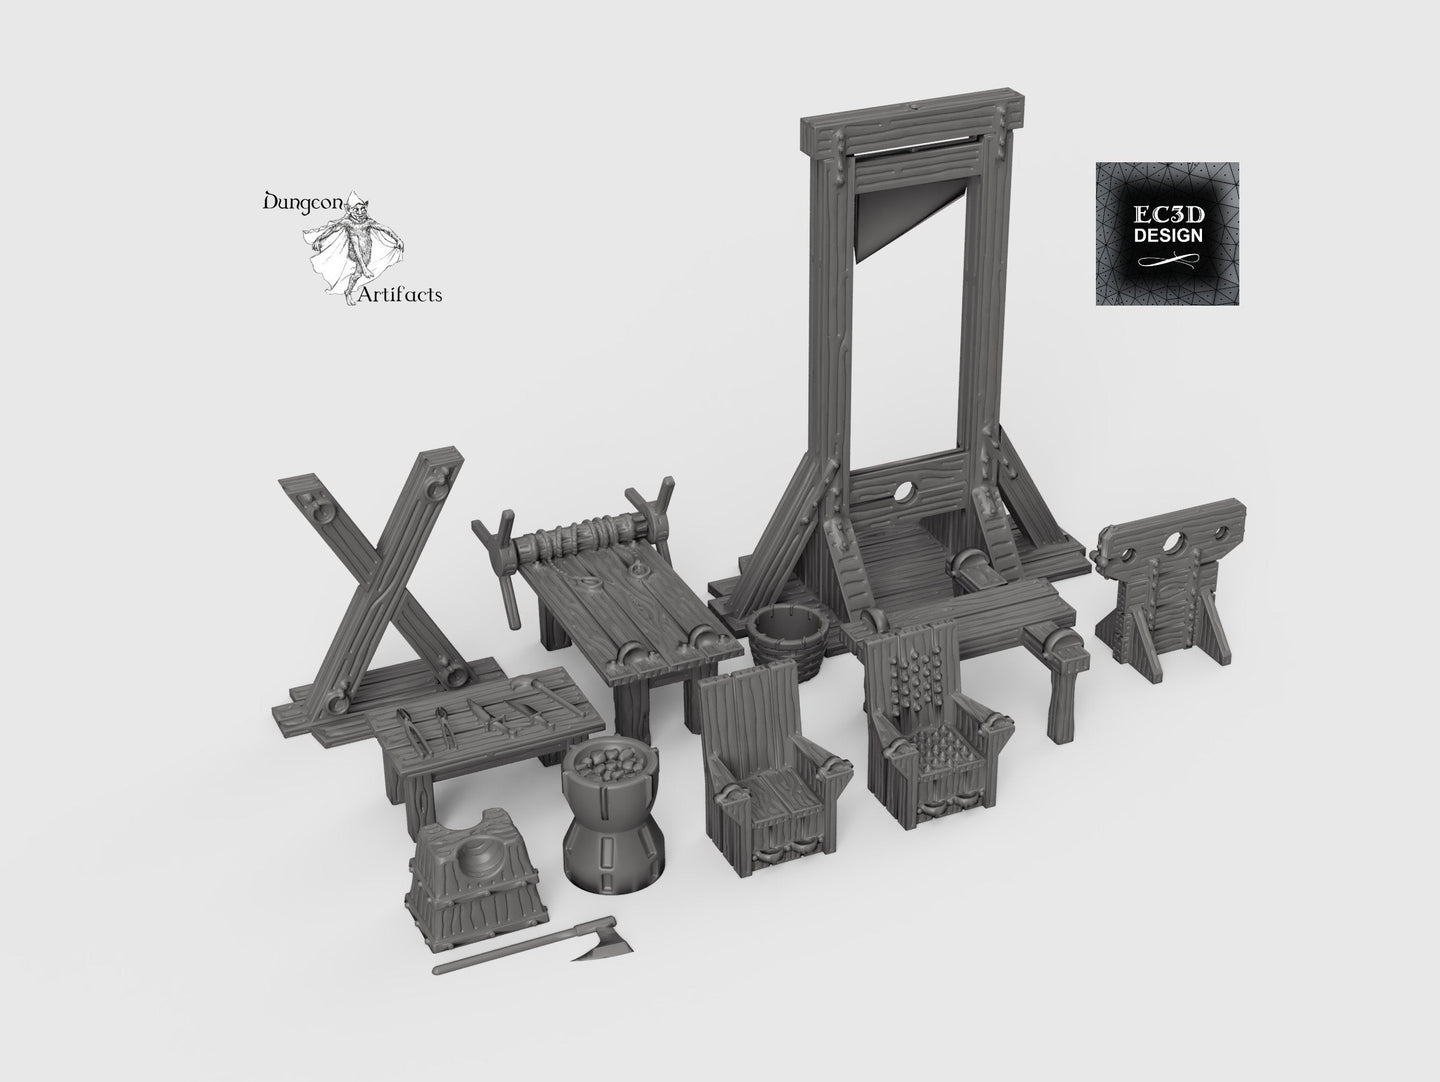 Torture Chamber Accessories - 28mm 32mm Hero's Hoard Wargaming Tabletop Scatter Miniatures Terrain D&D, DnD, Pathfinder, Warhammer